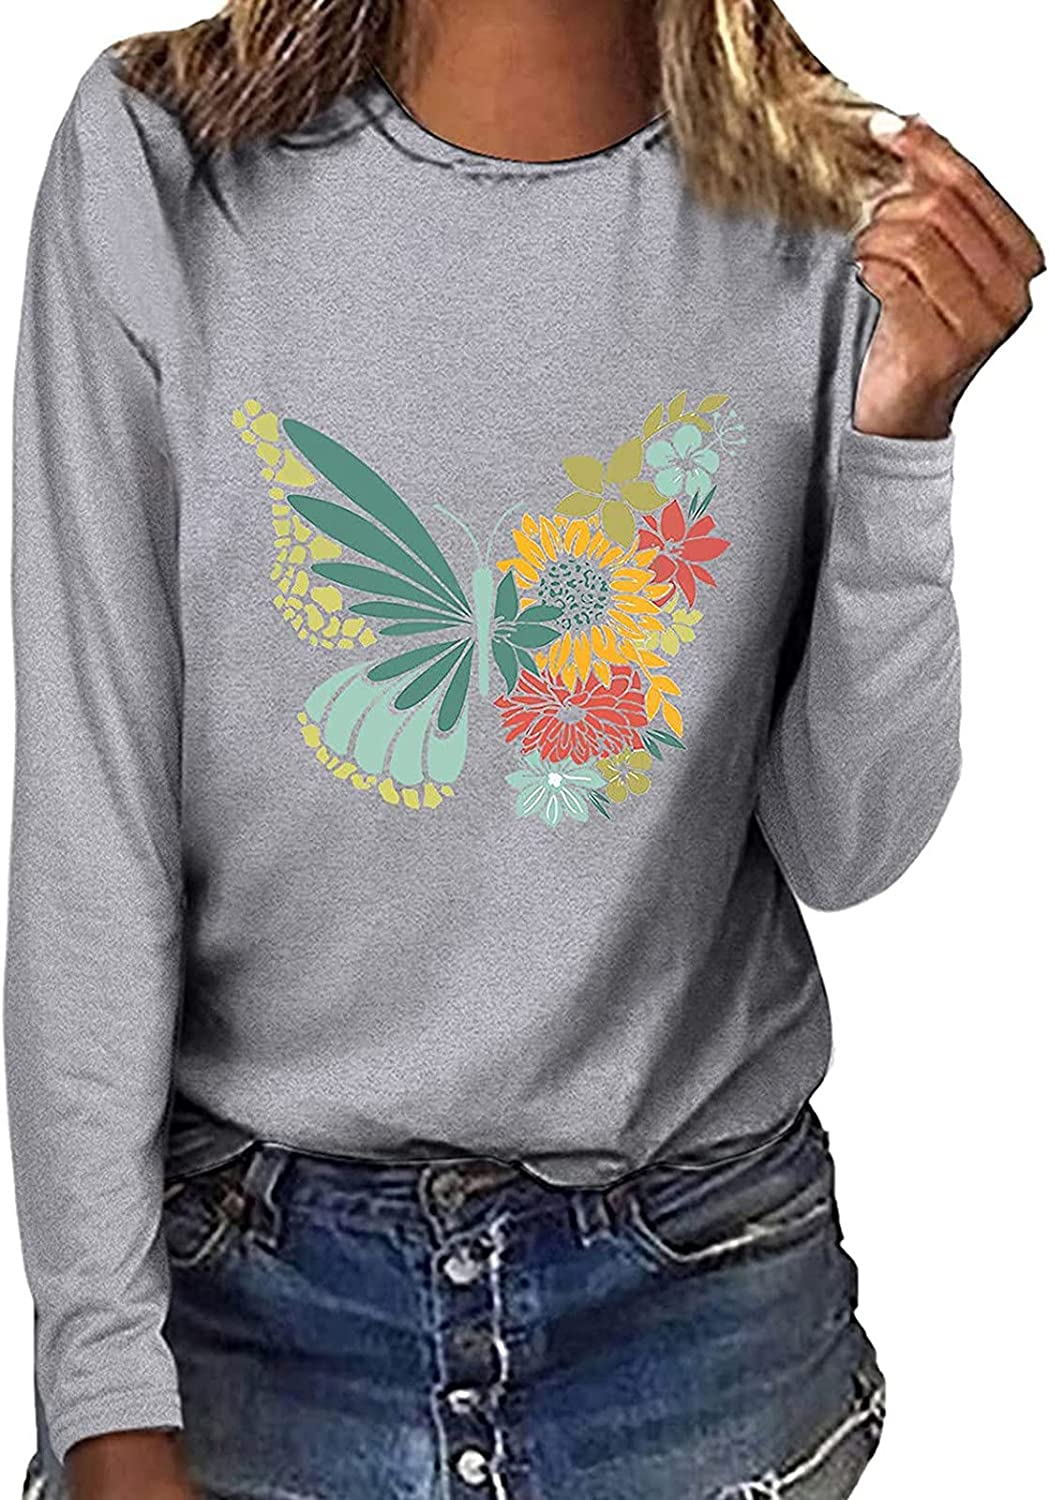 Women's Fall Long Sleeve Sweatshirt Casual Crewneck Trendy Print Tops Loose Fit T-Shirt Workout Pullover Graphic Tees